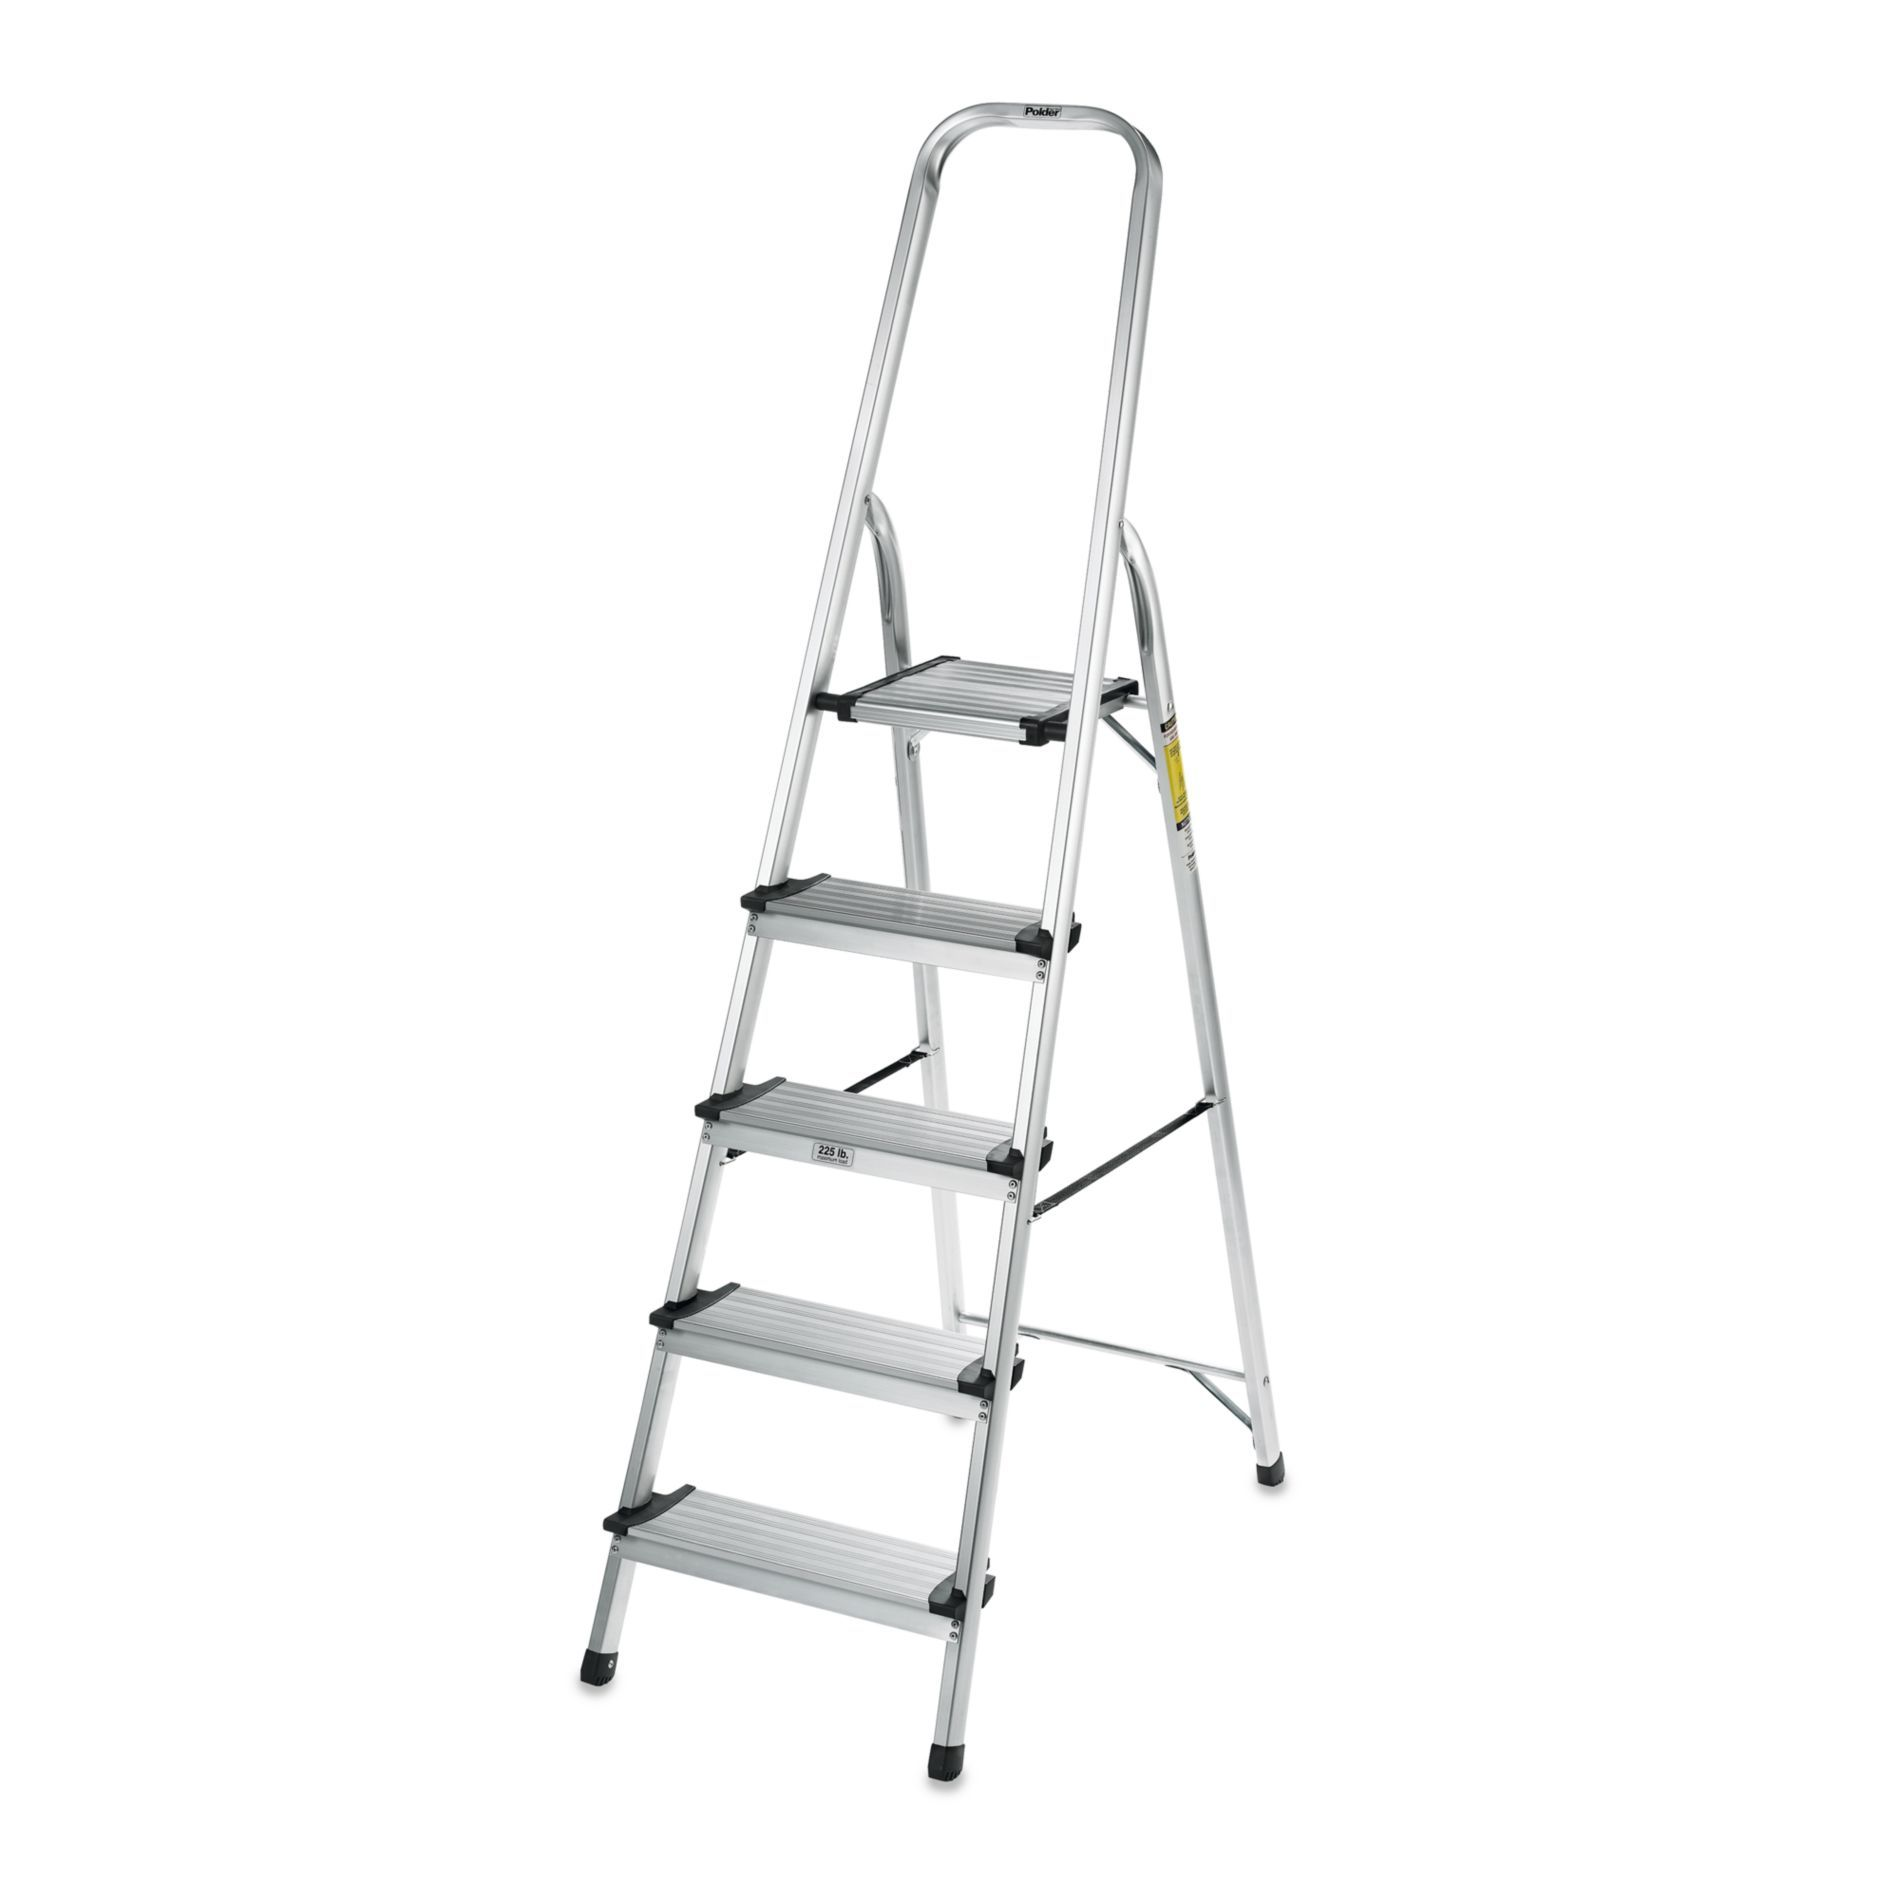 Polder 5 Step Ultra Light Step Ladder In Aluminum Step Lighting Step Ladders Polder